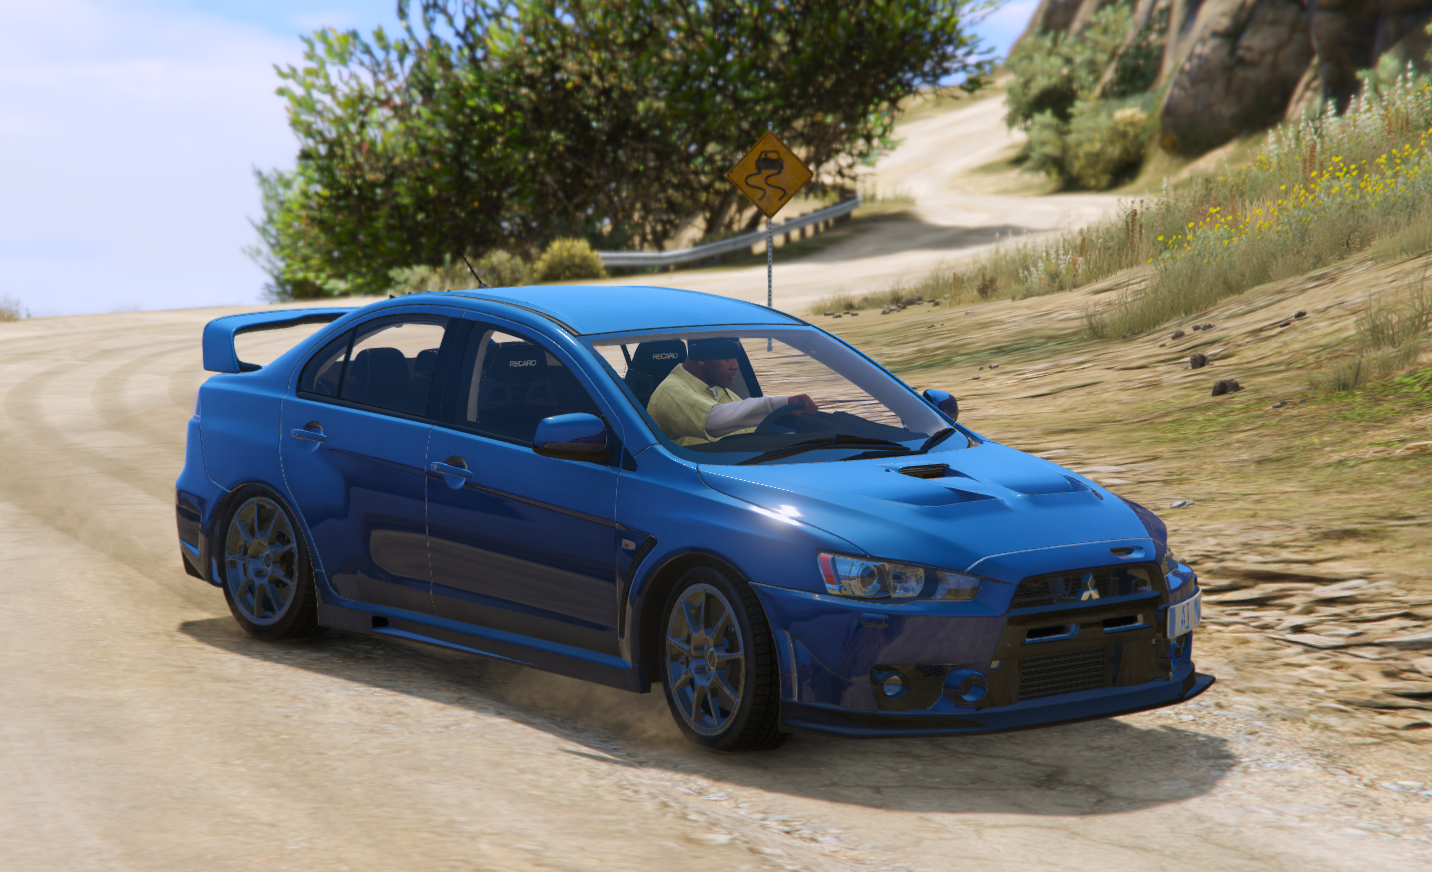 mitsubishi lancer evolution x fq 400 add on oiv tuning gta5. Black Bedroom Furniture Sets. Home Design Ideas